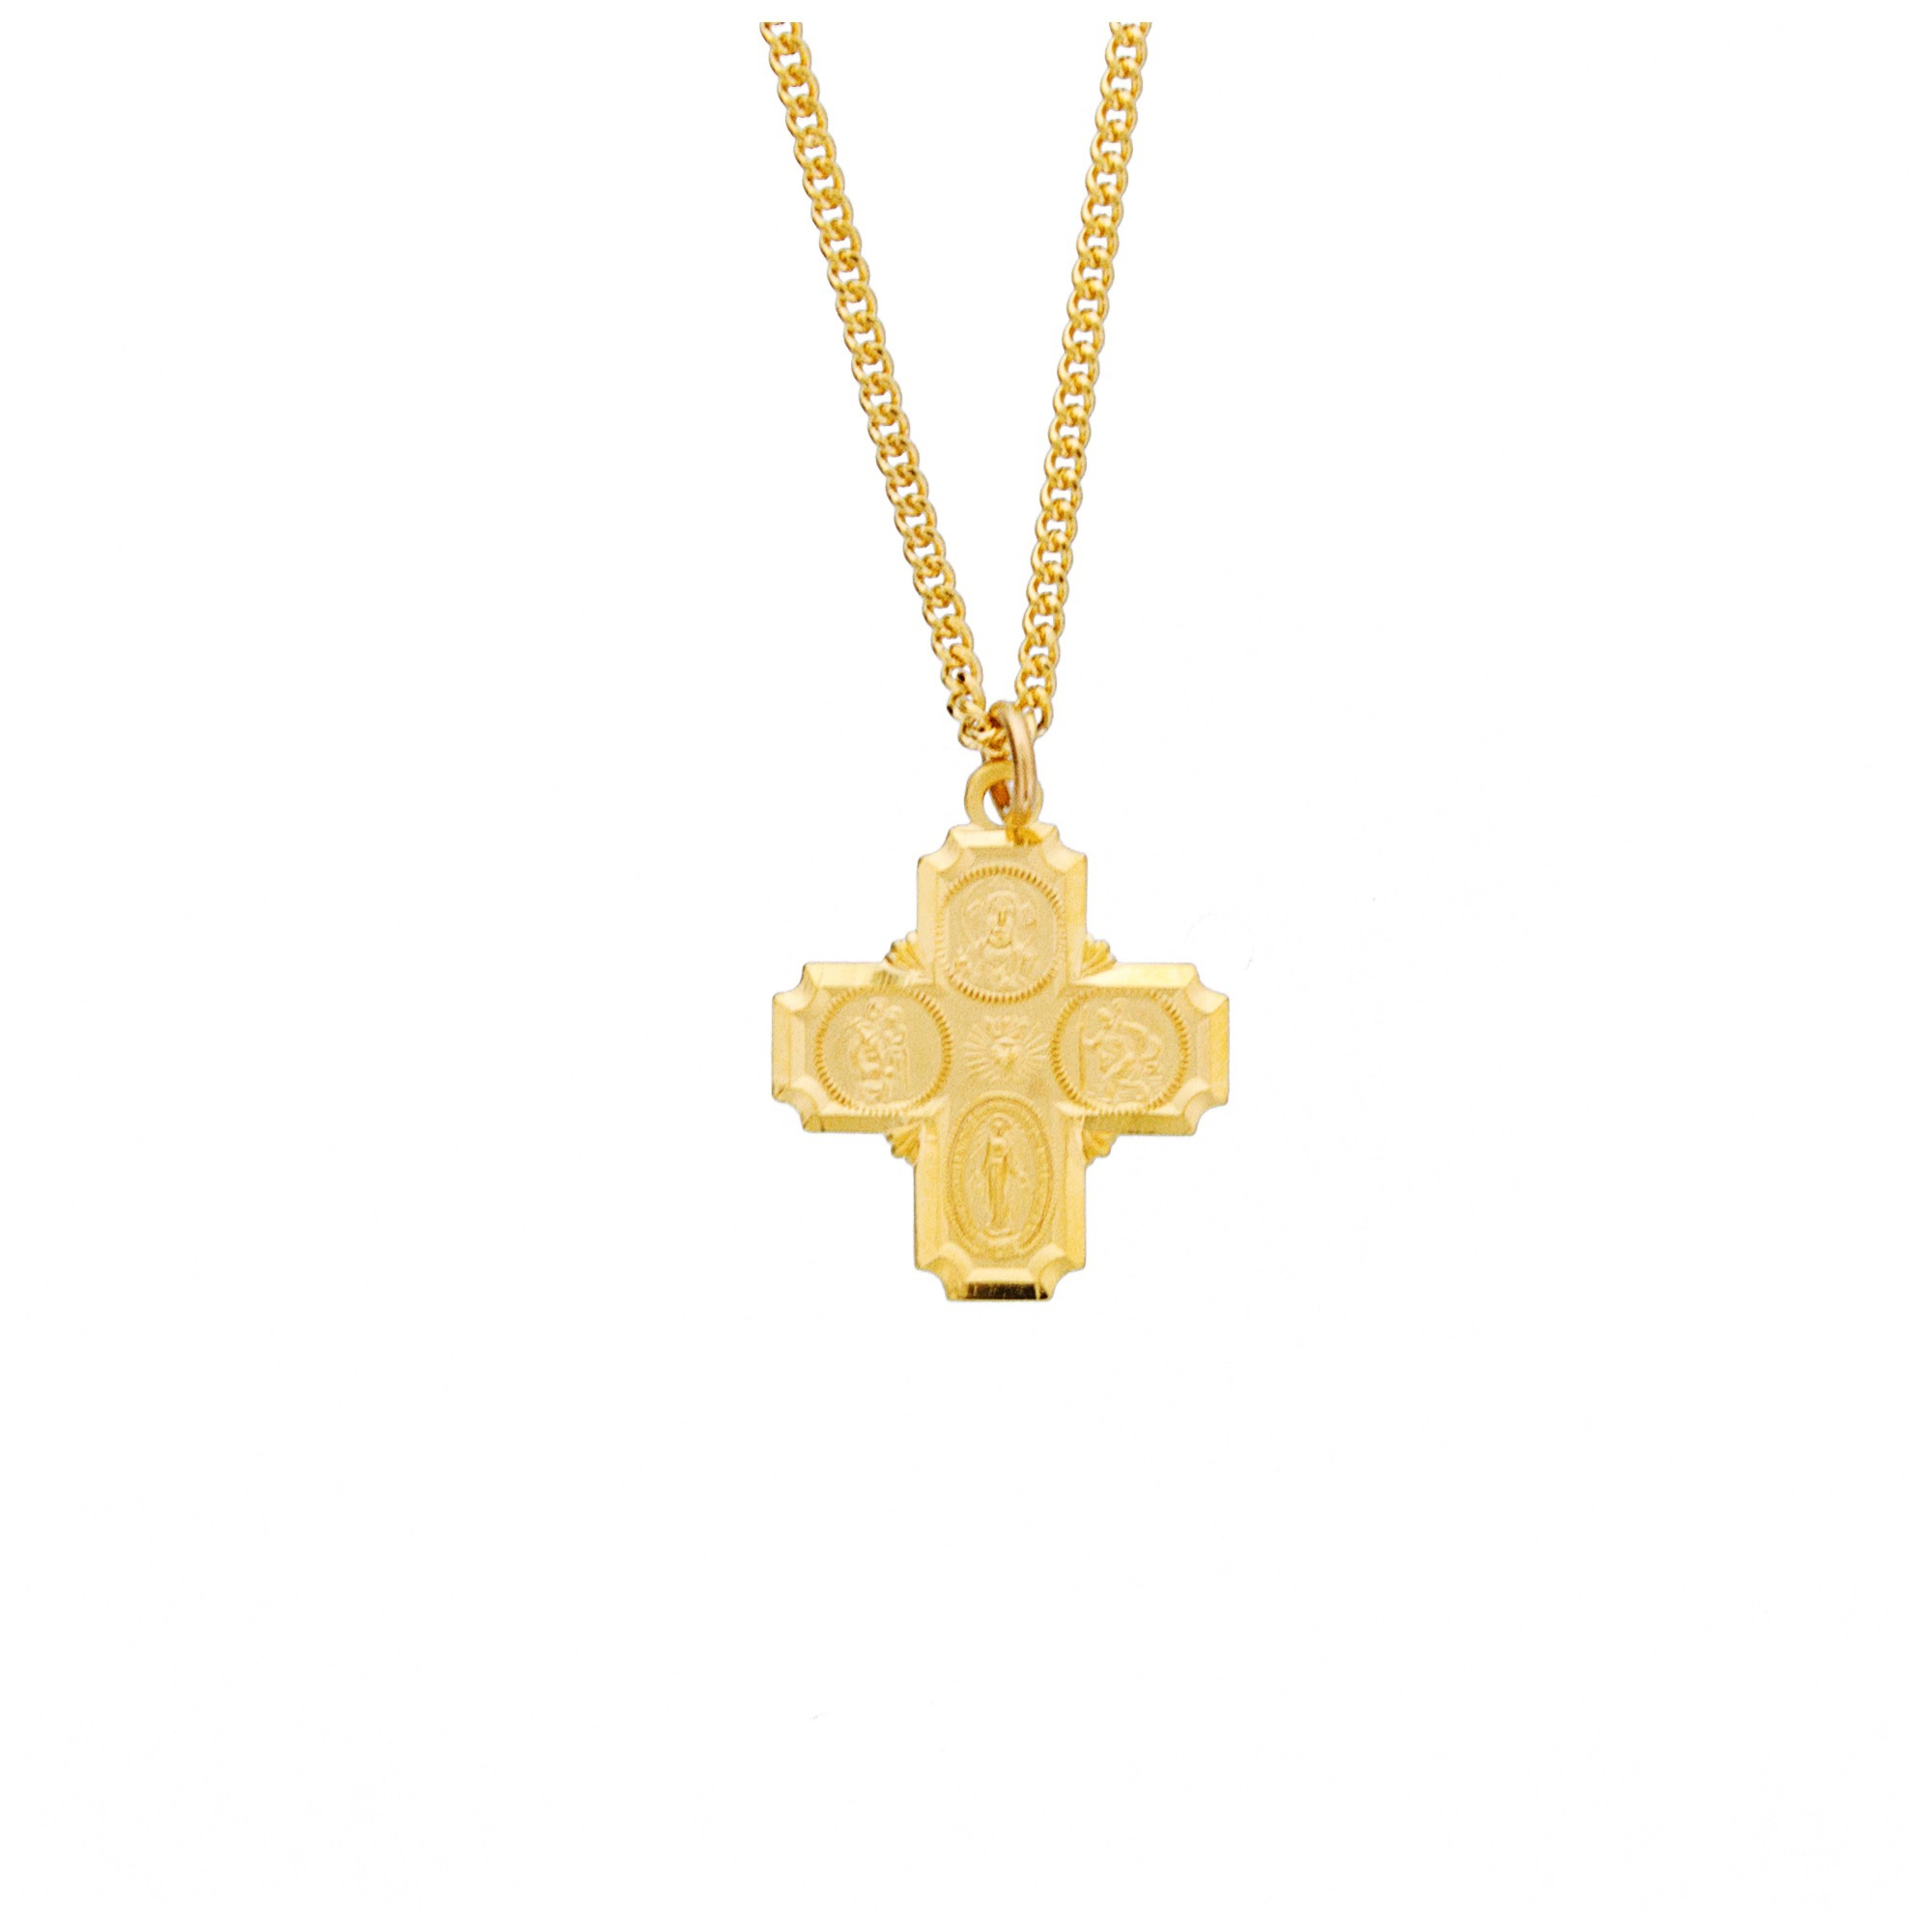 Four-Way Crosses (Medals)   The Catholic Company